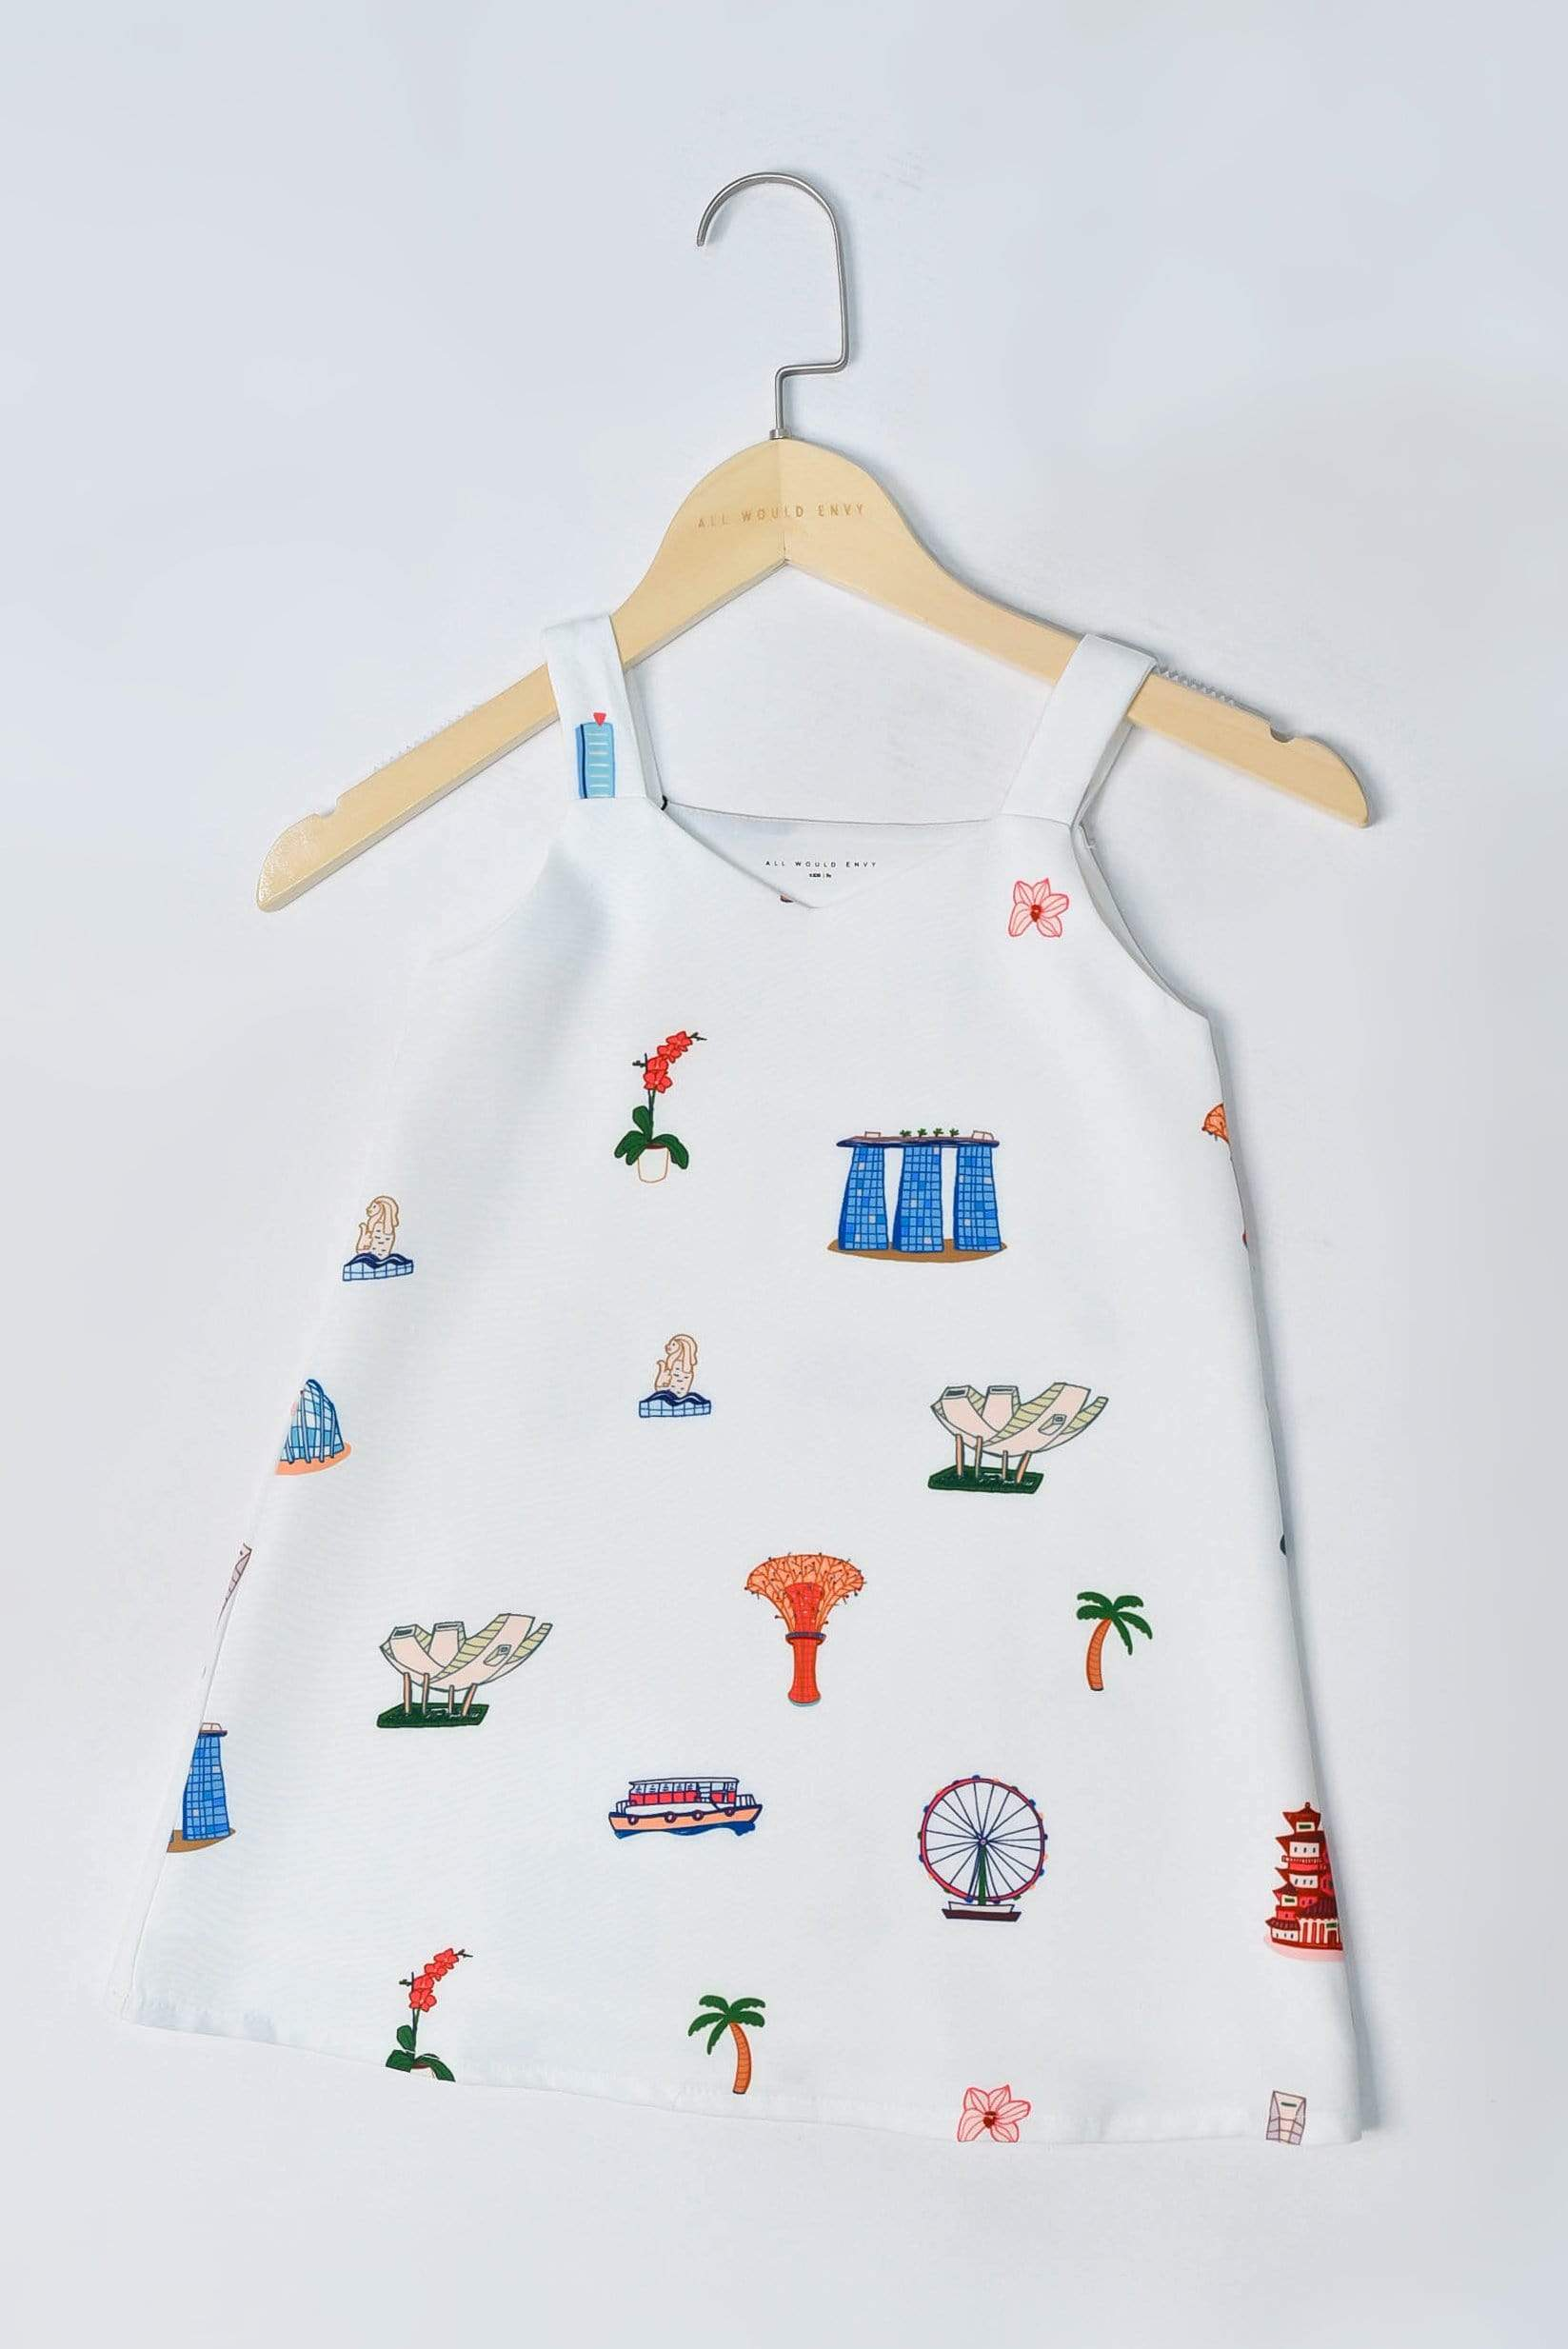 THIS IS HOME KIDS' TWO-WAY DRESS